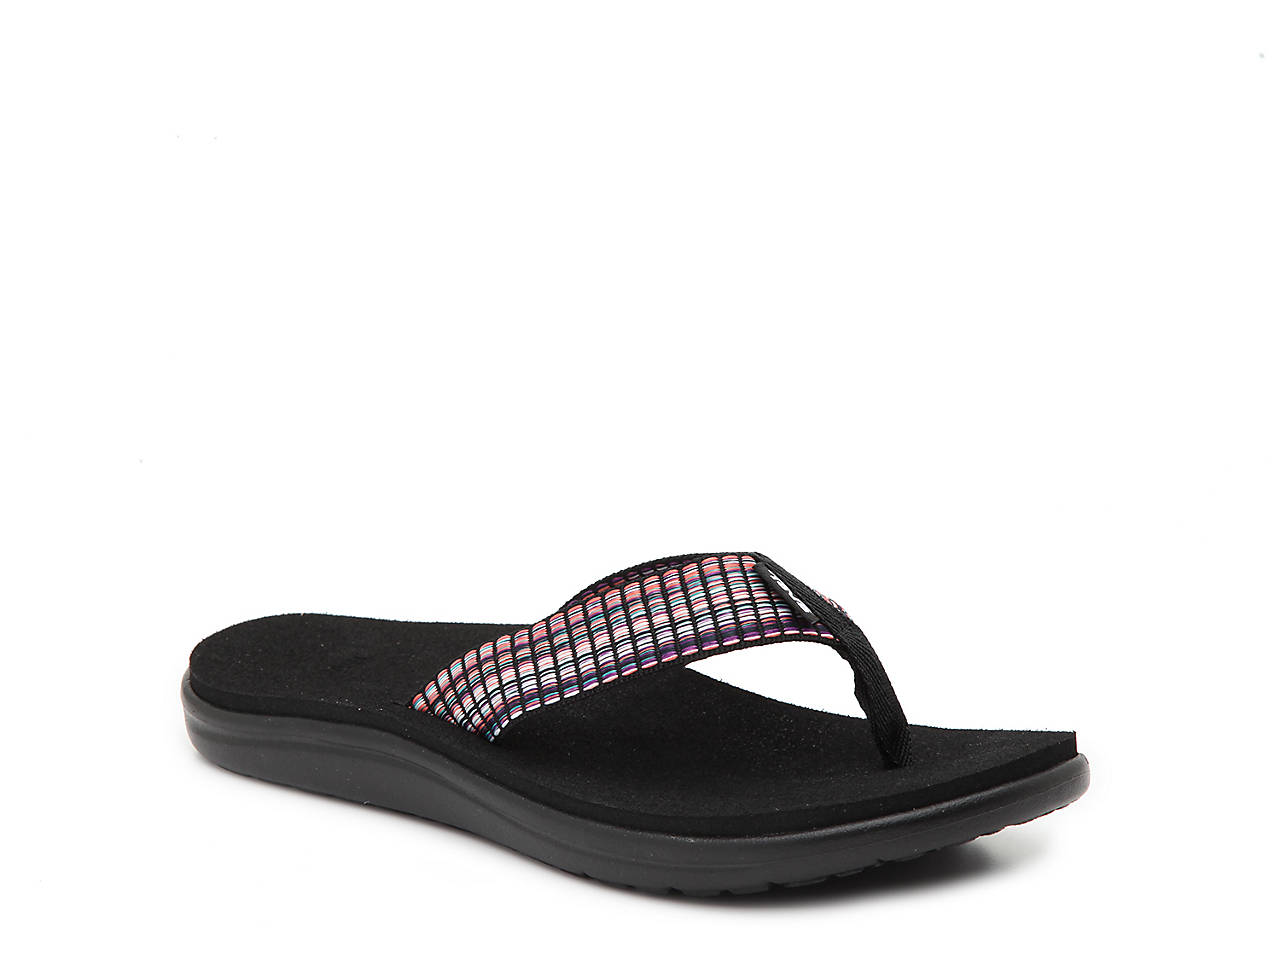 504978f4be9edd Teva Voya Flip Flop Women s Shoes